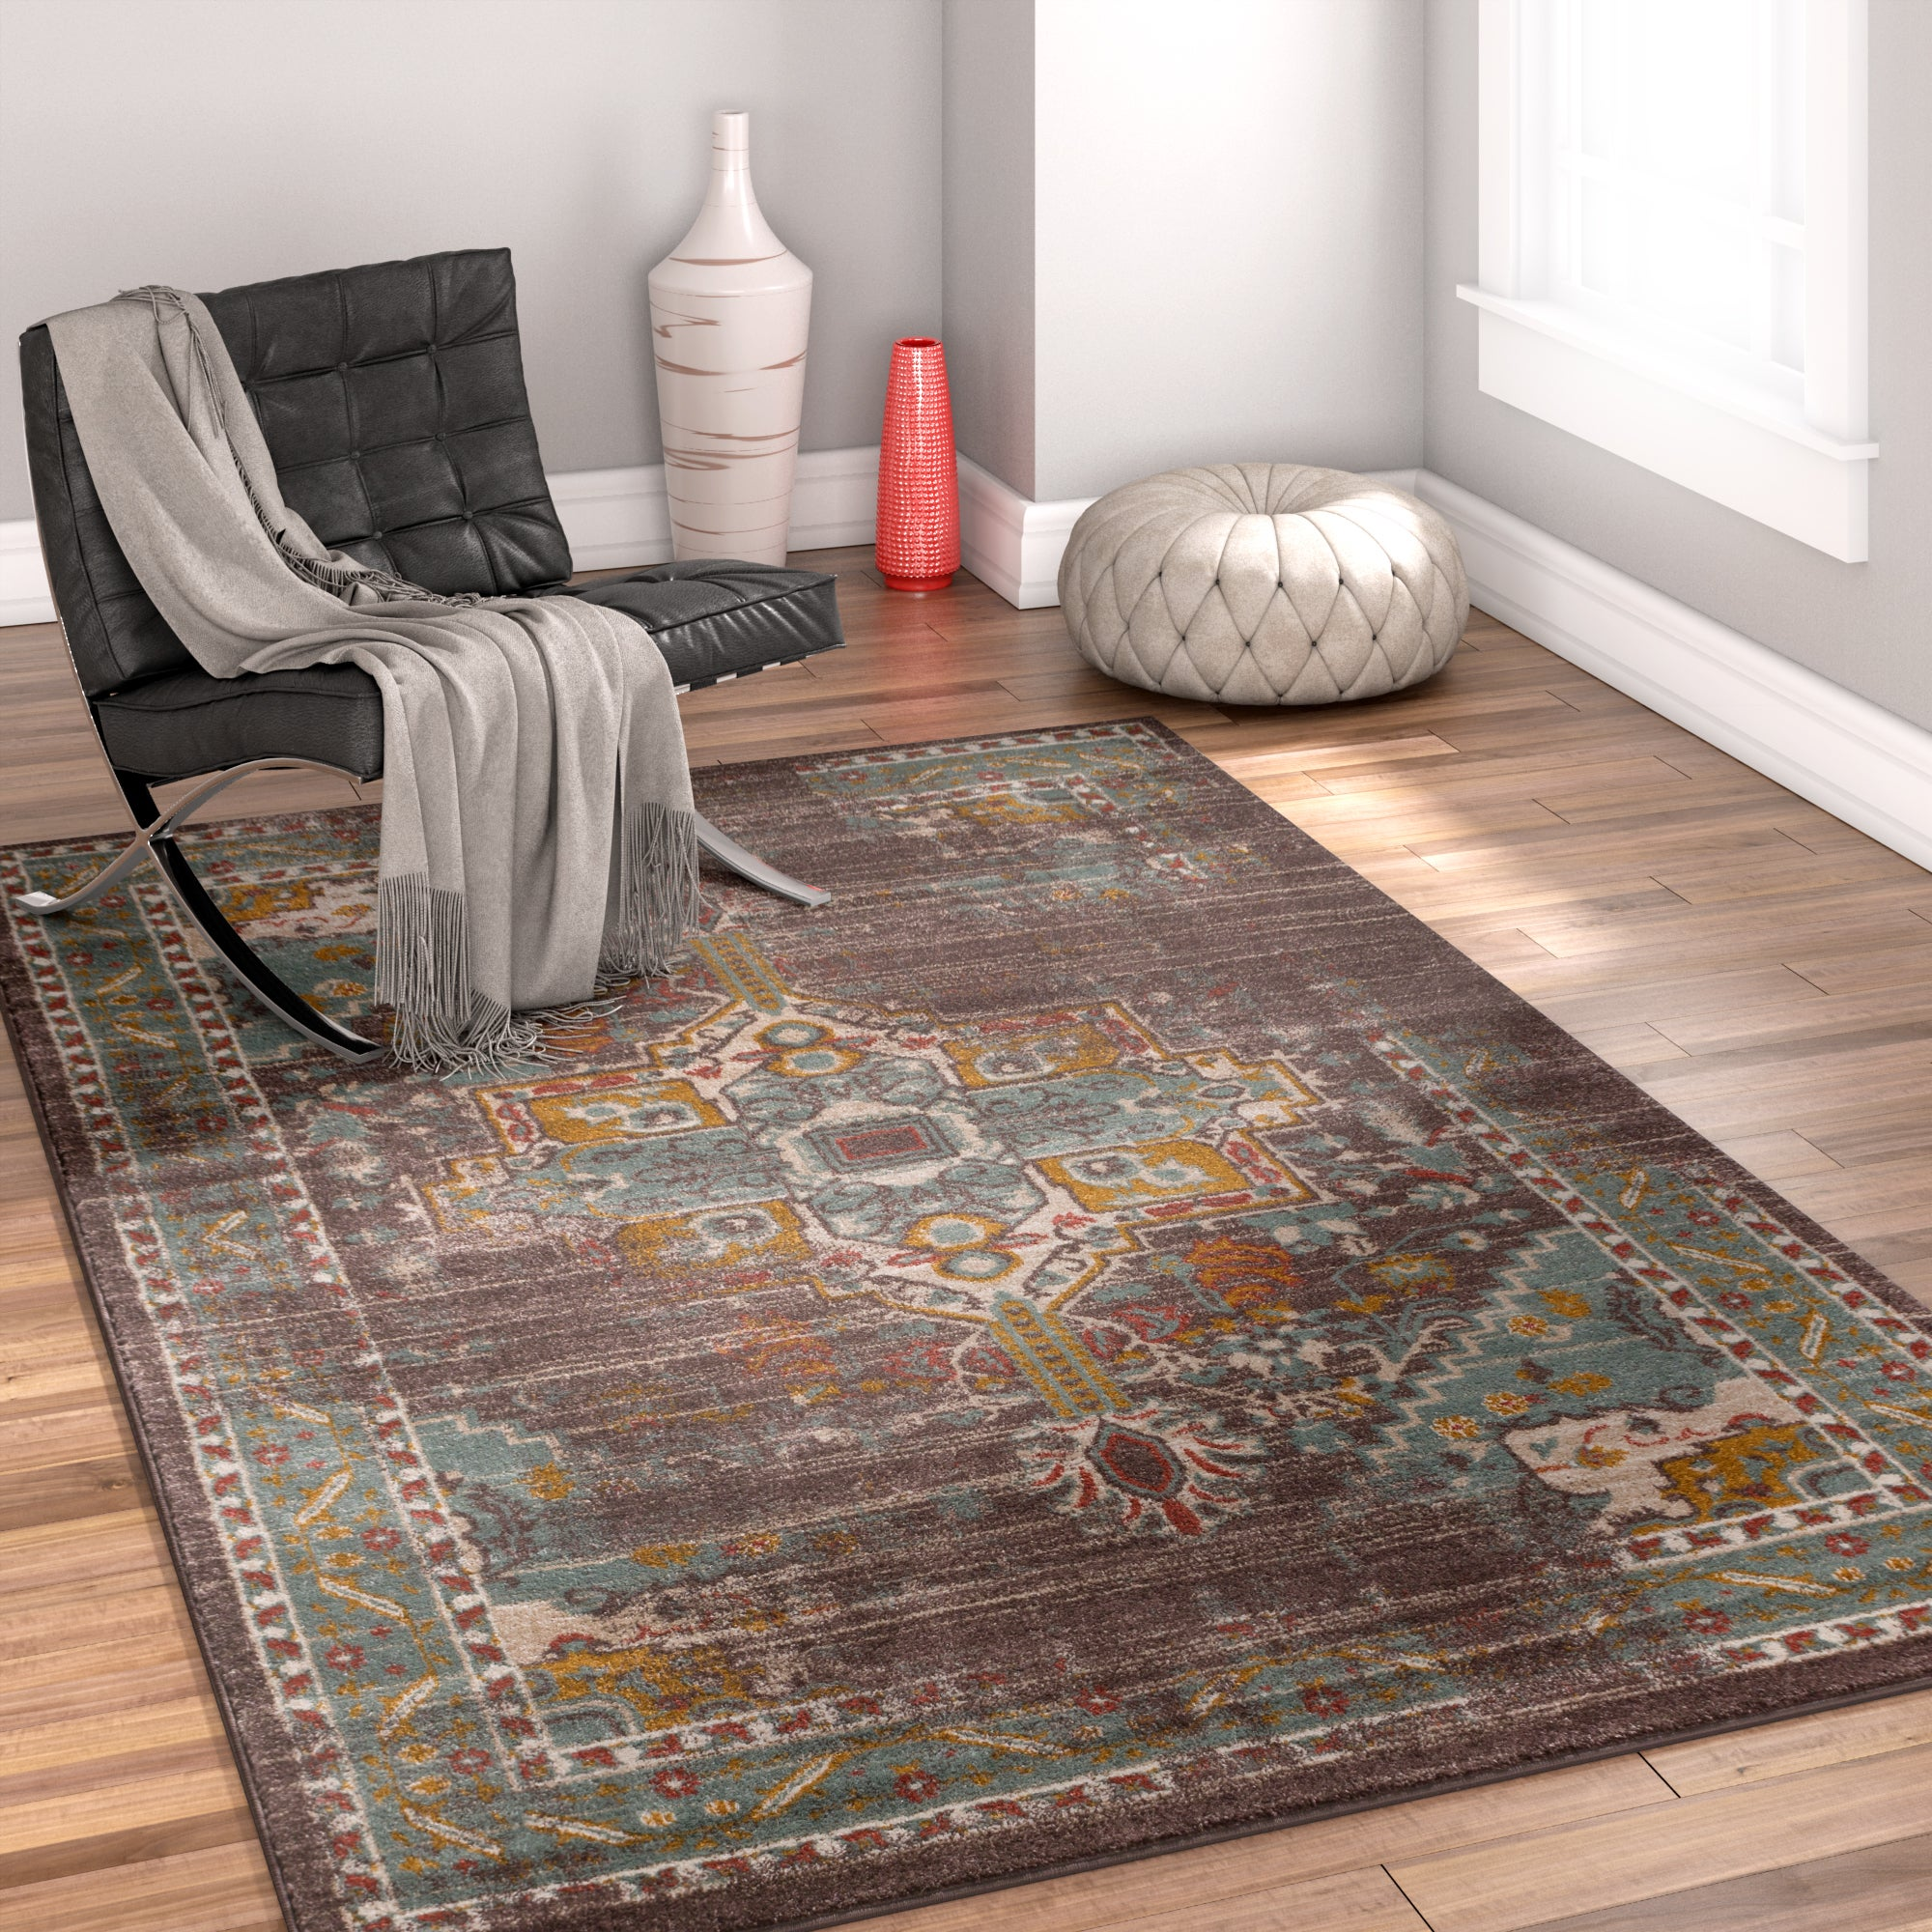 Well Woven Bohemian Vintage Blue/Brown Area Rug - 710 x 106 (Blue)